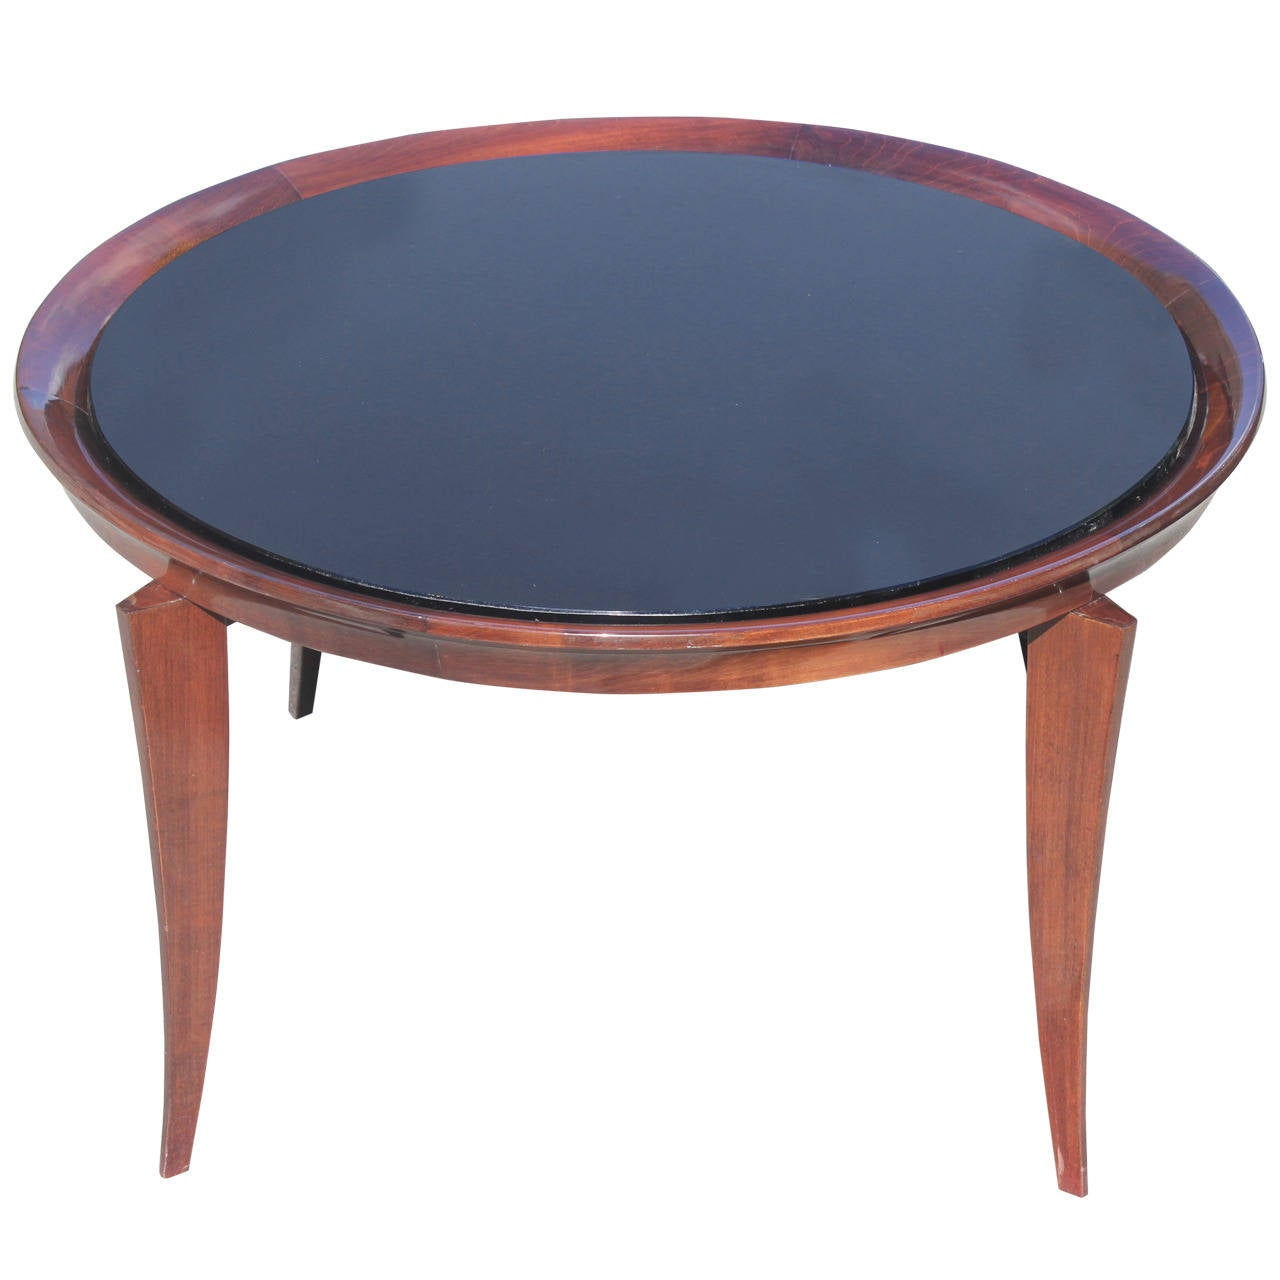 French Art Deco Large Round Coffee Or Cocktail Table